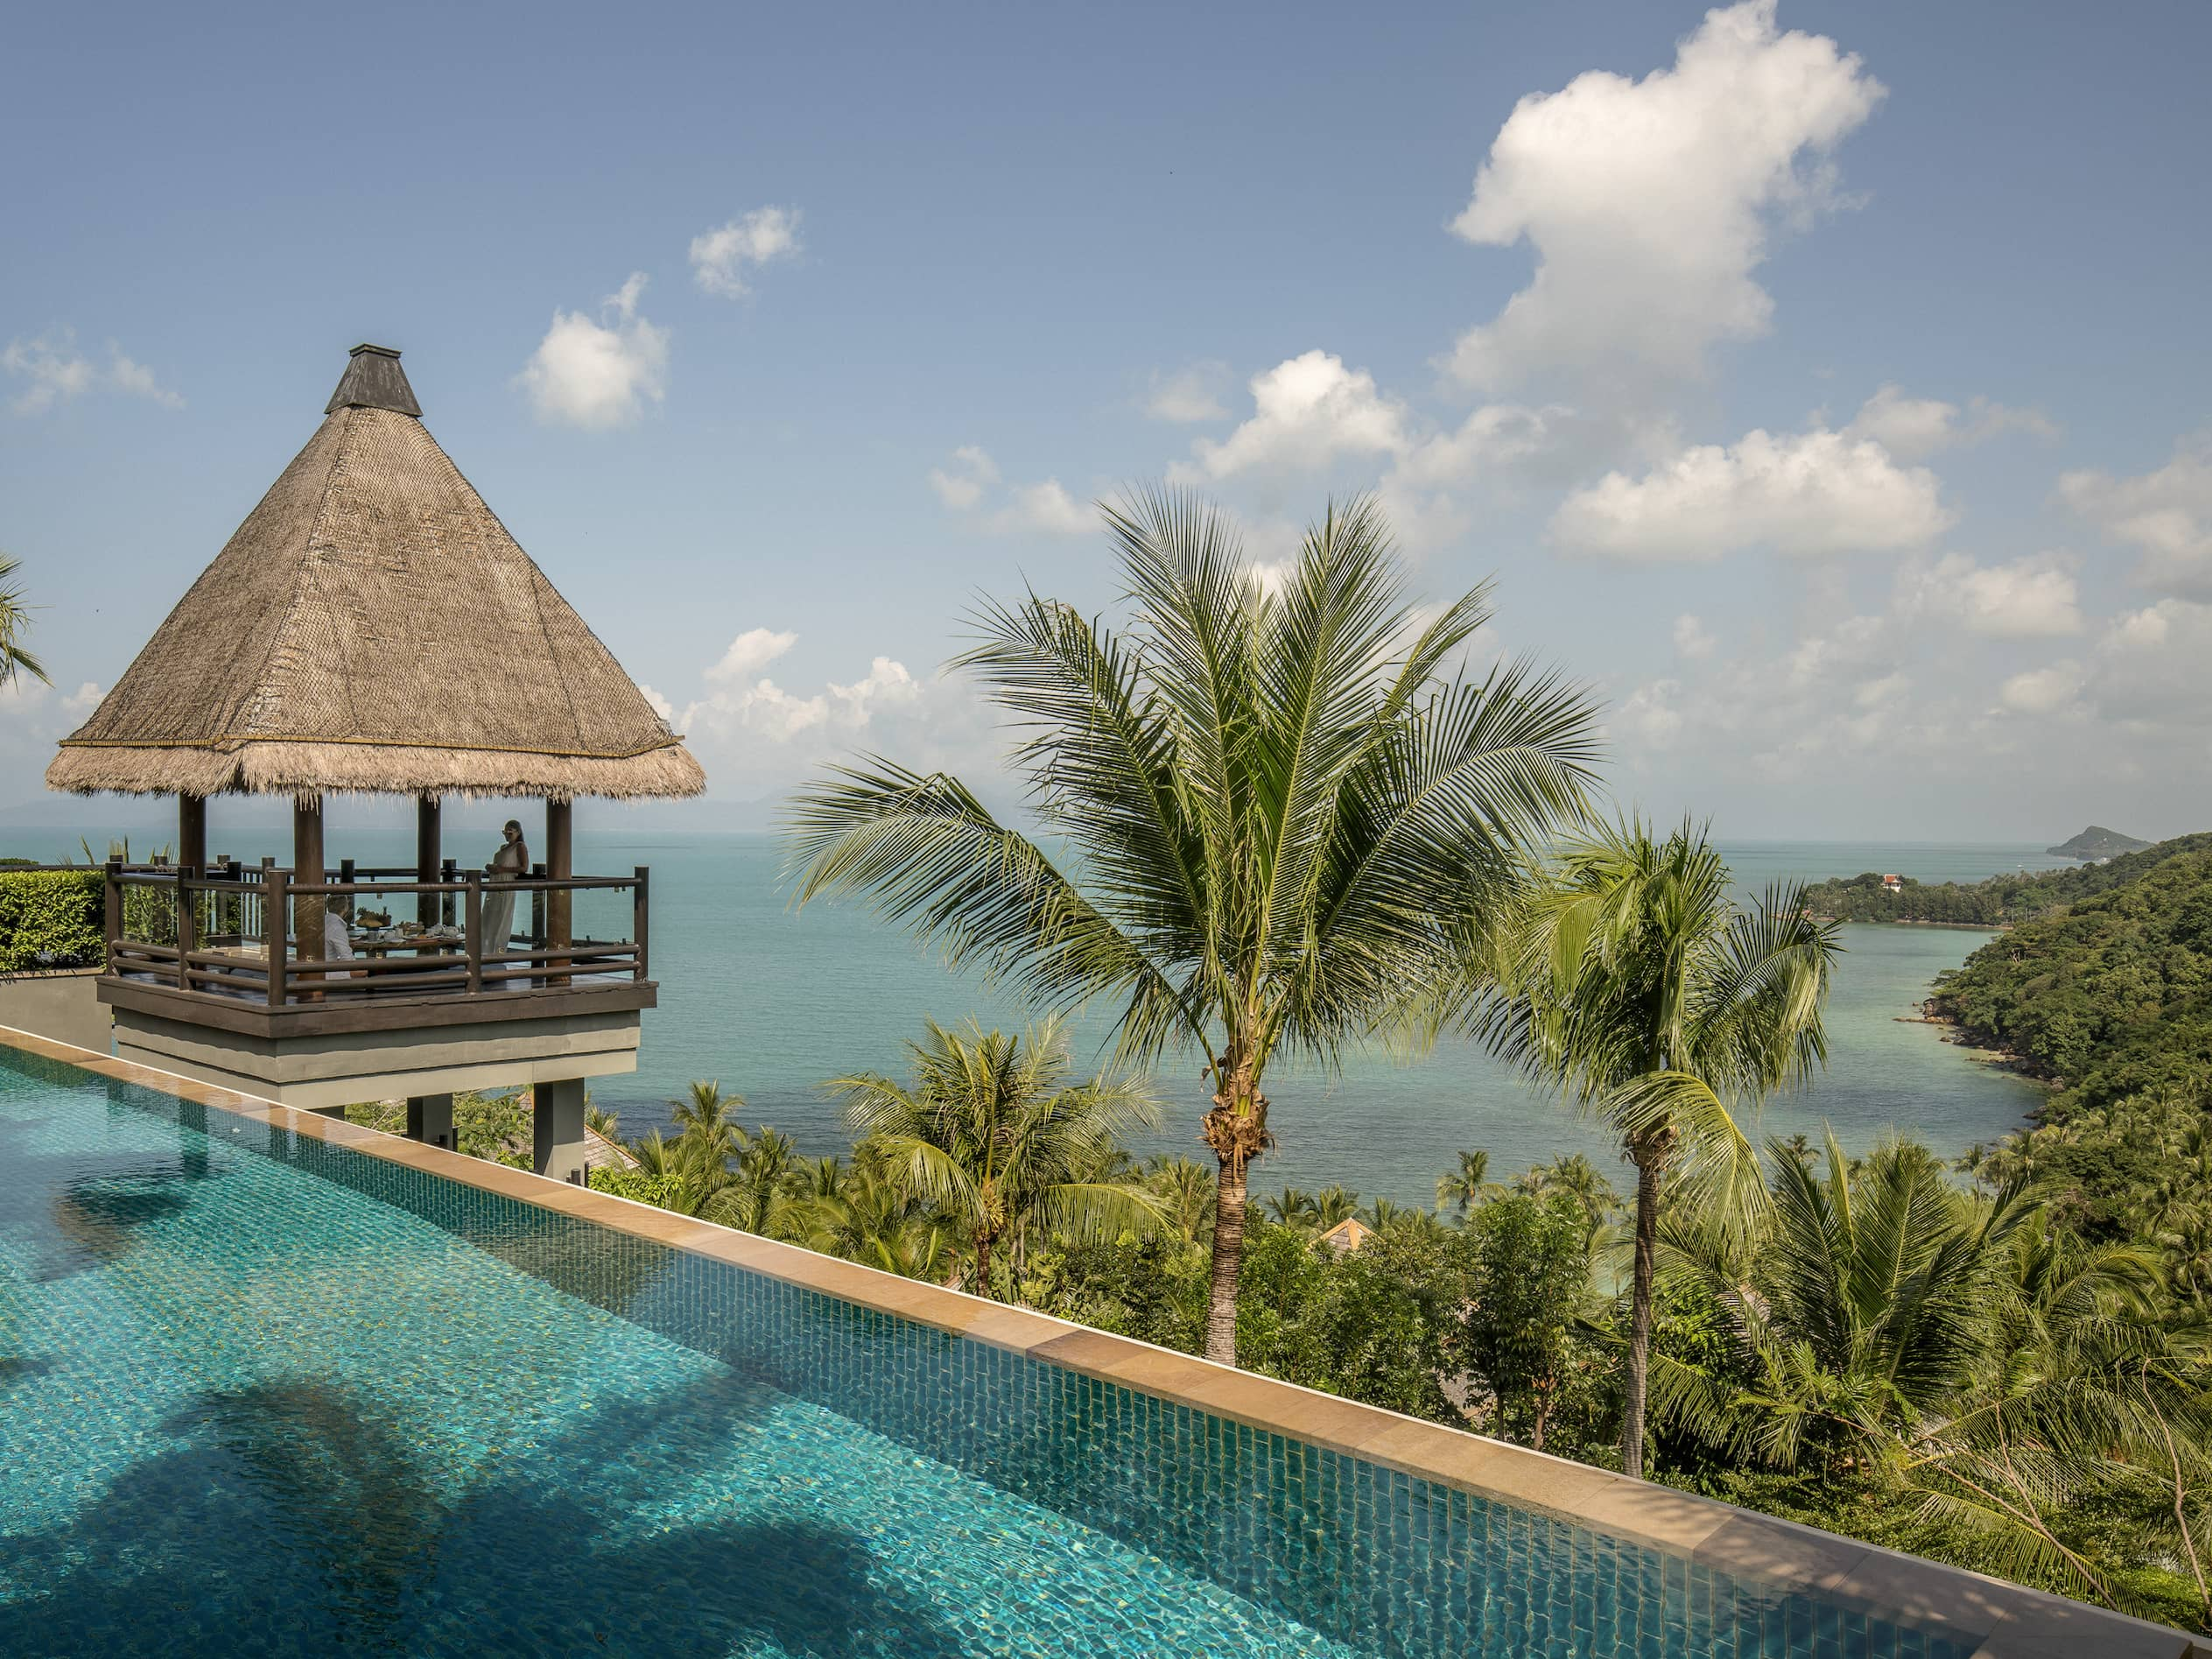 Relax on the palm-fringed beaches of Koh Samui